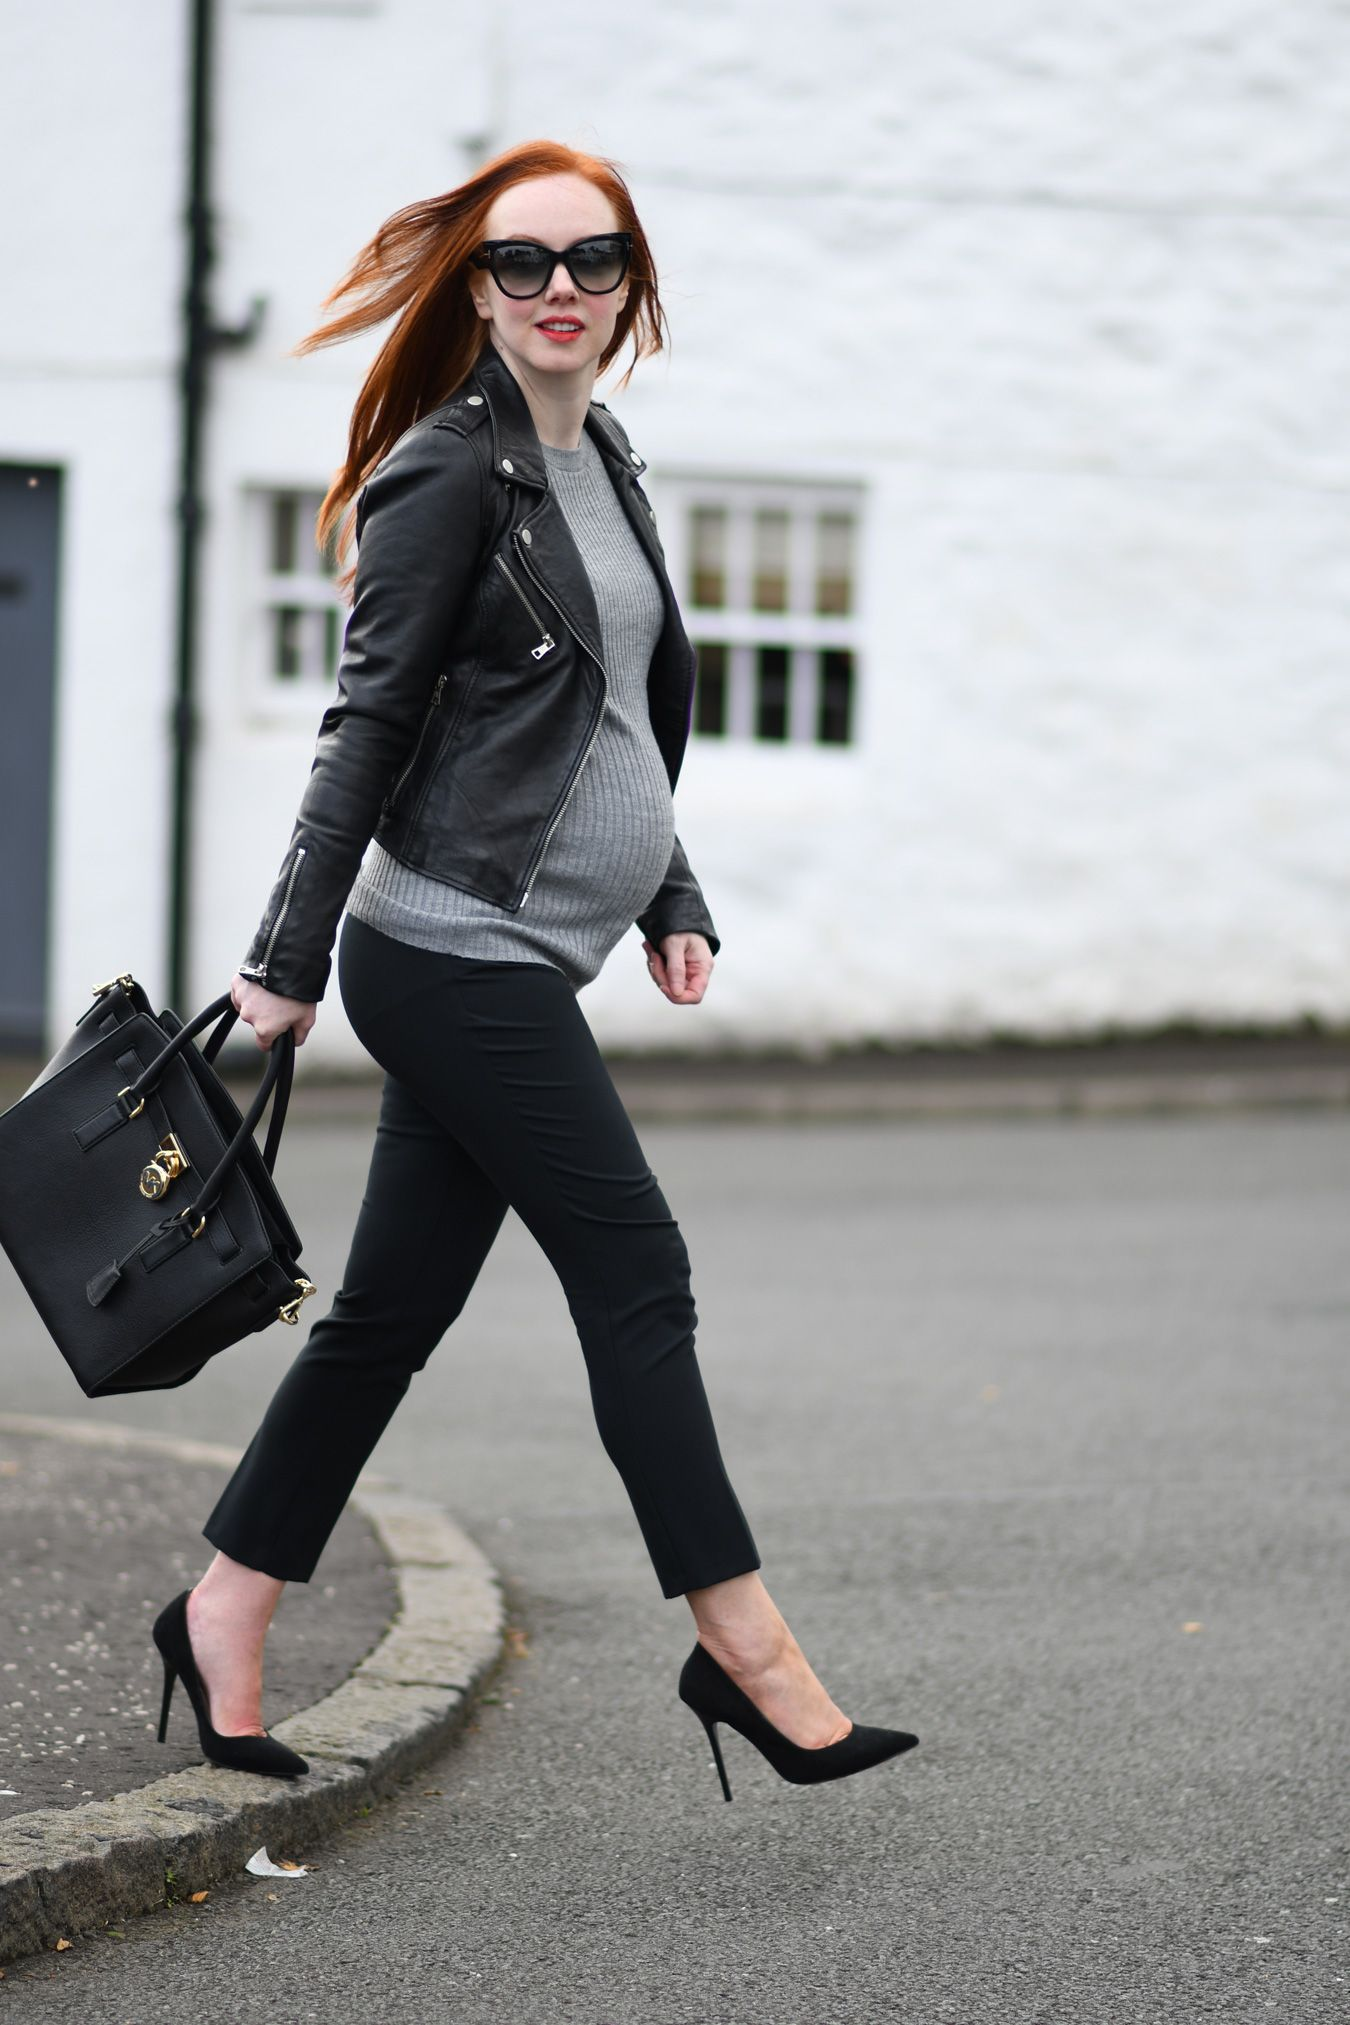 af737d8c3e5cb maternity style: black cropped trousers with leather biker jacket and high  heels